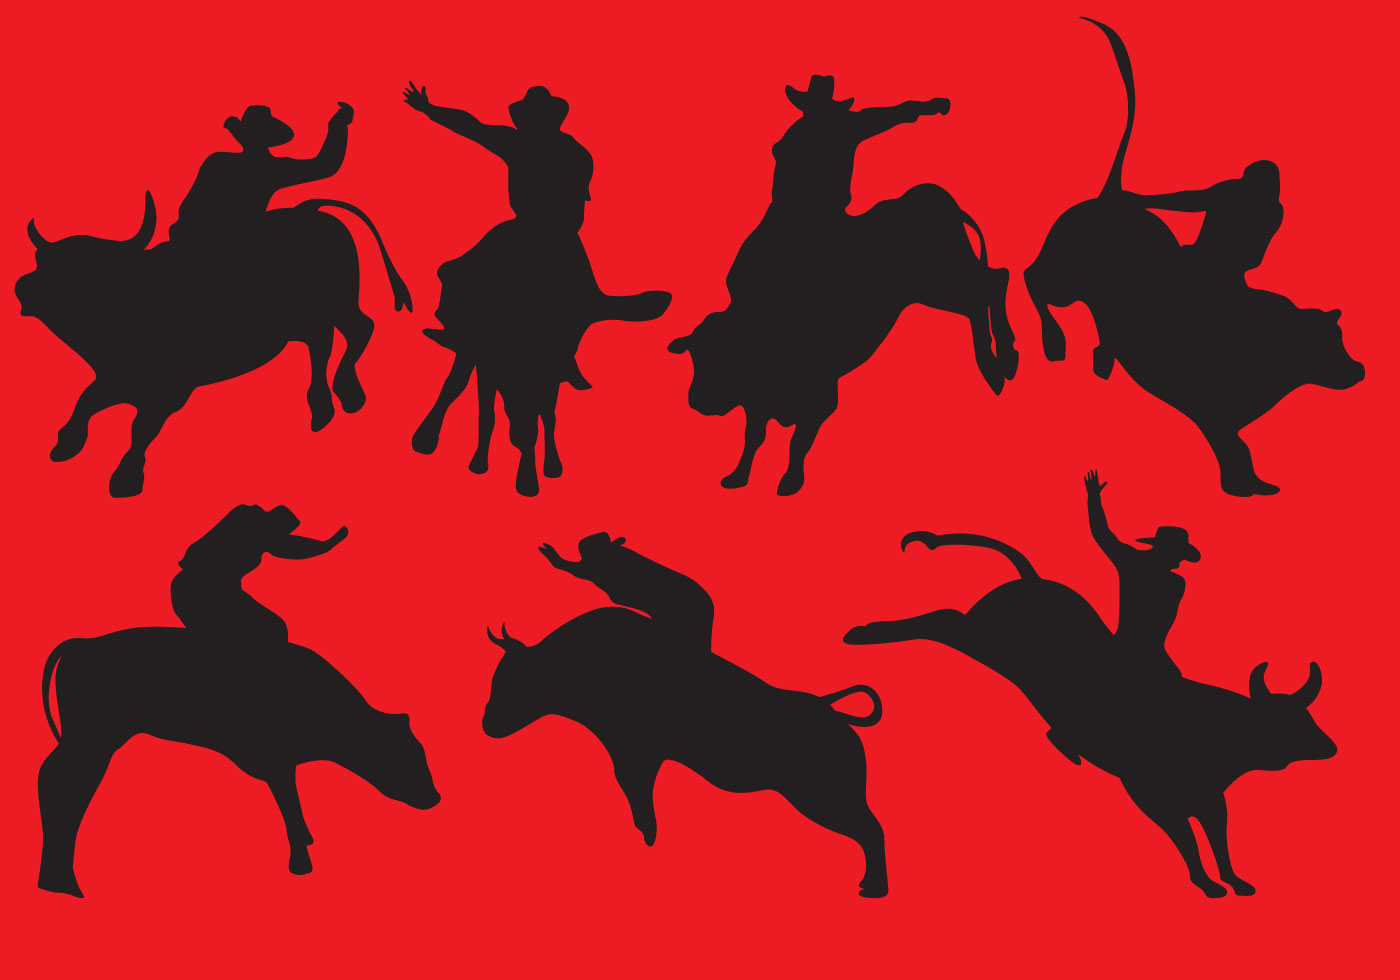 Bull Rider Silhouettes - Download Free Vector Art, Stock ...